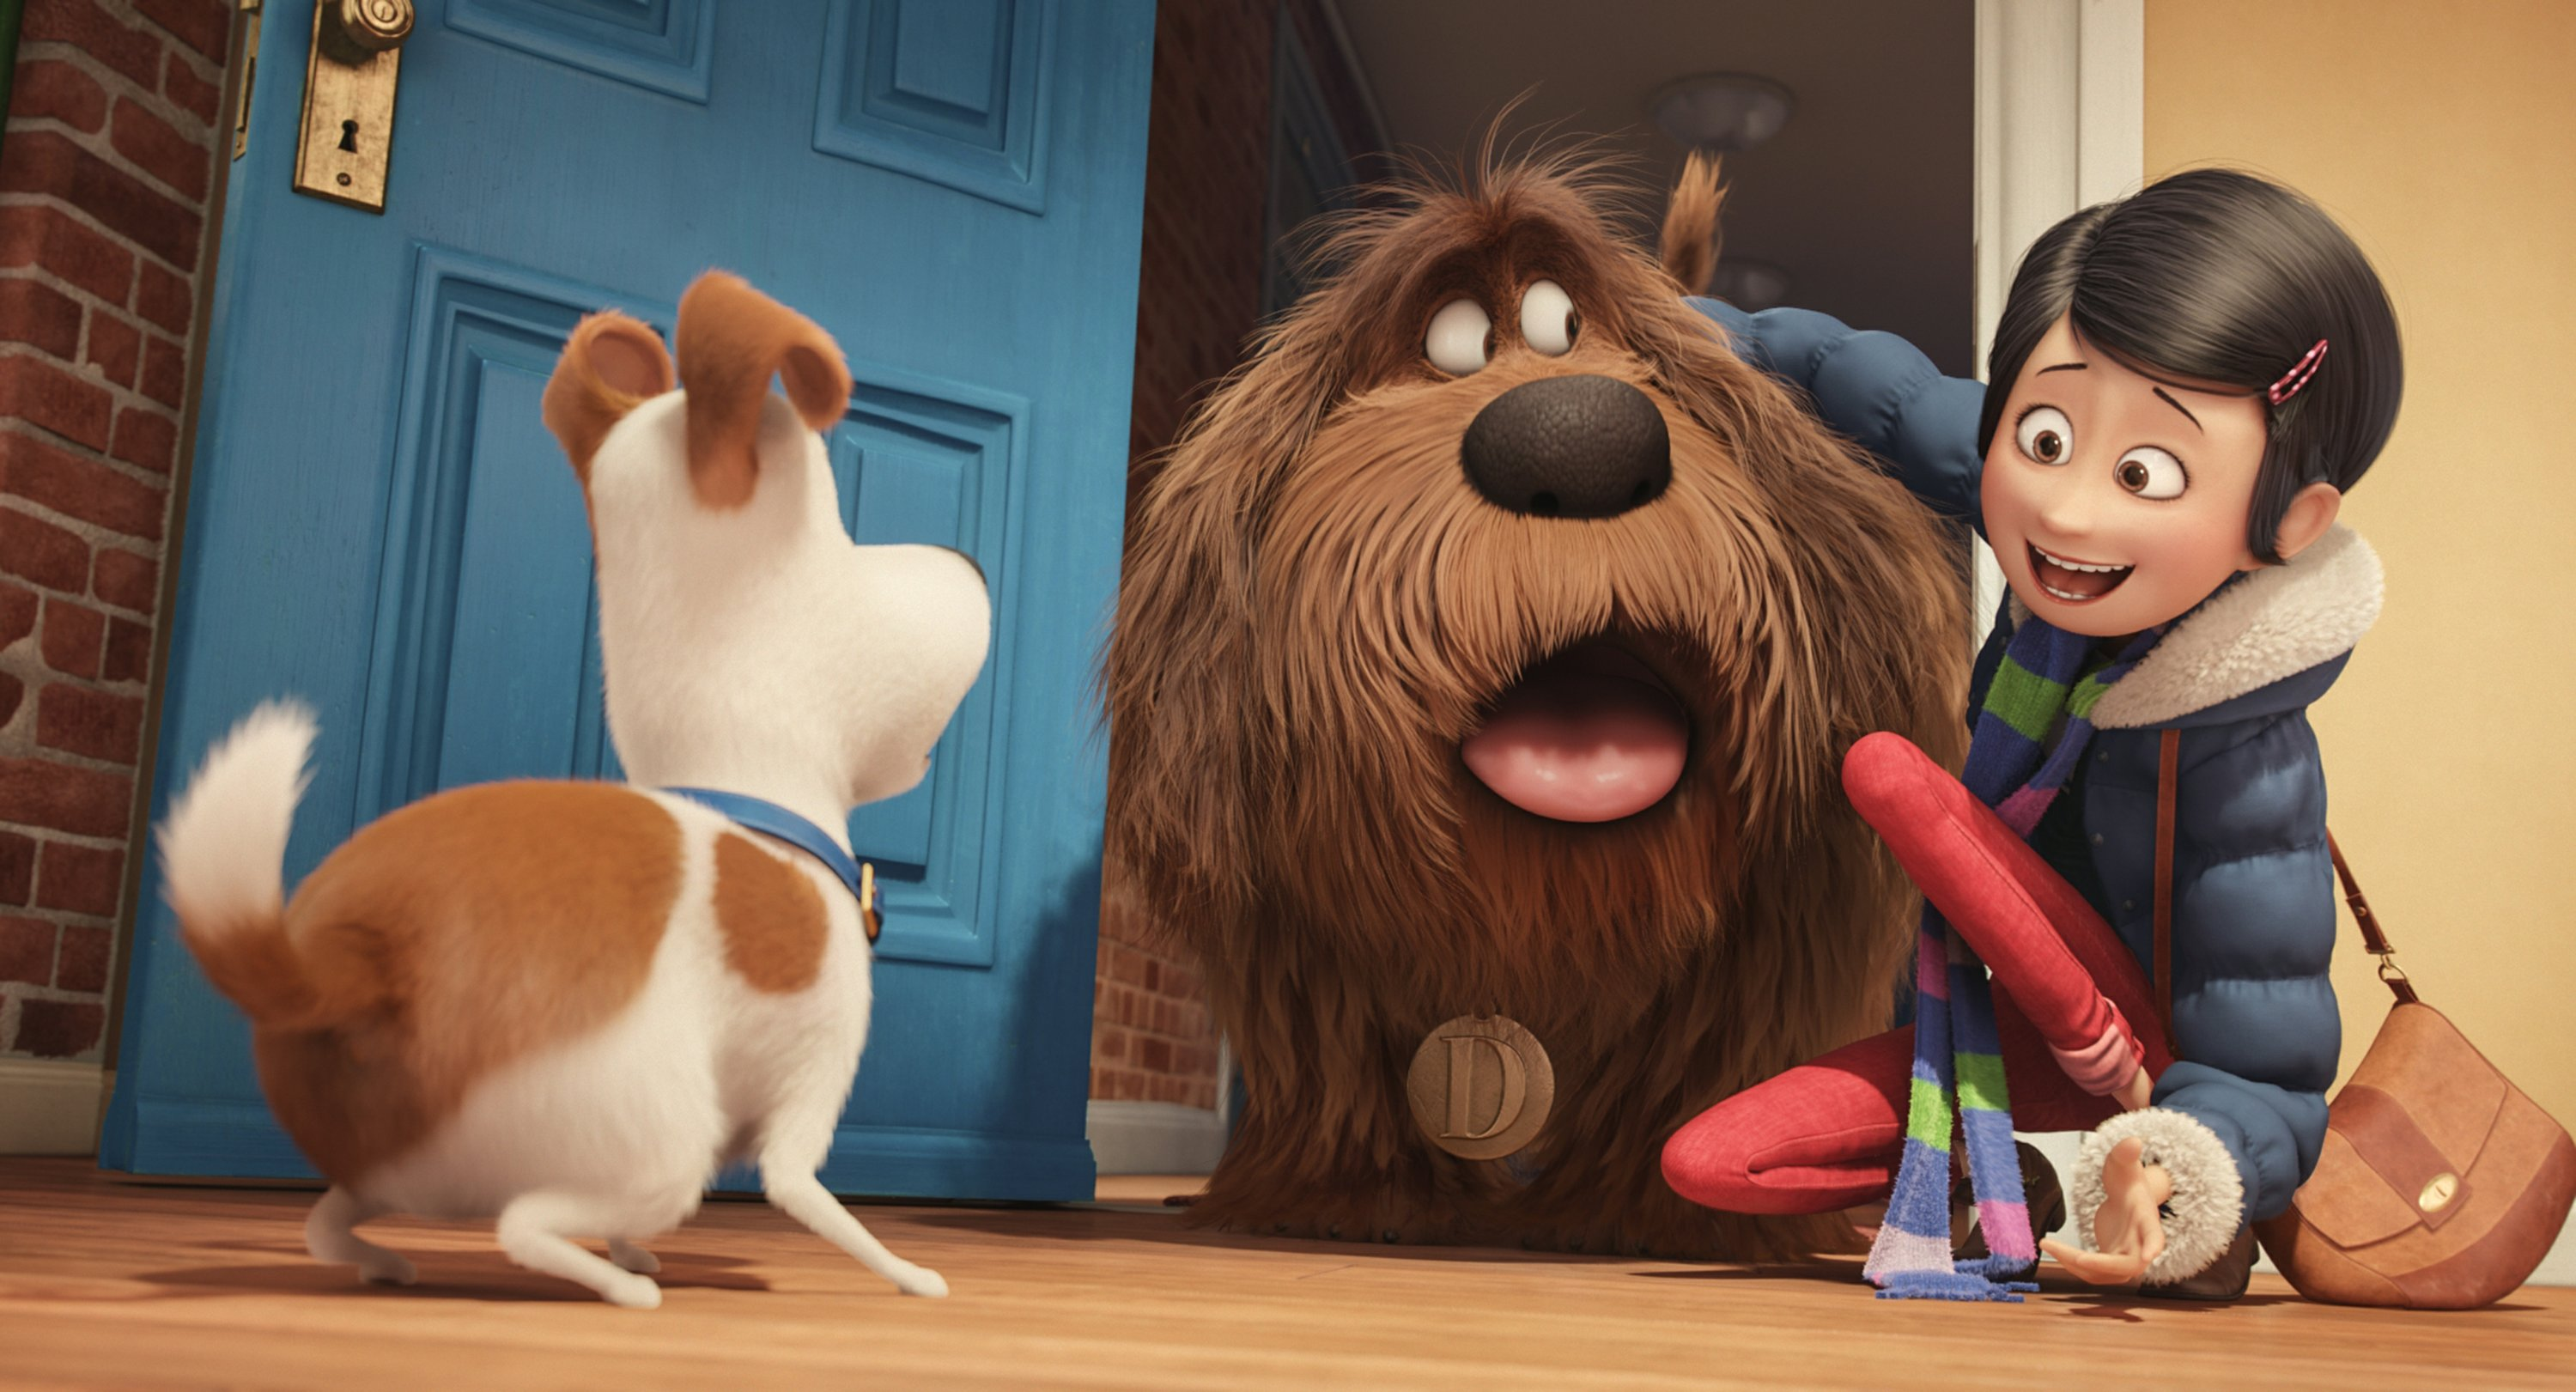 'Secret Life of Pets' fetches $103 million in opening days